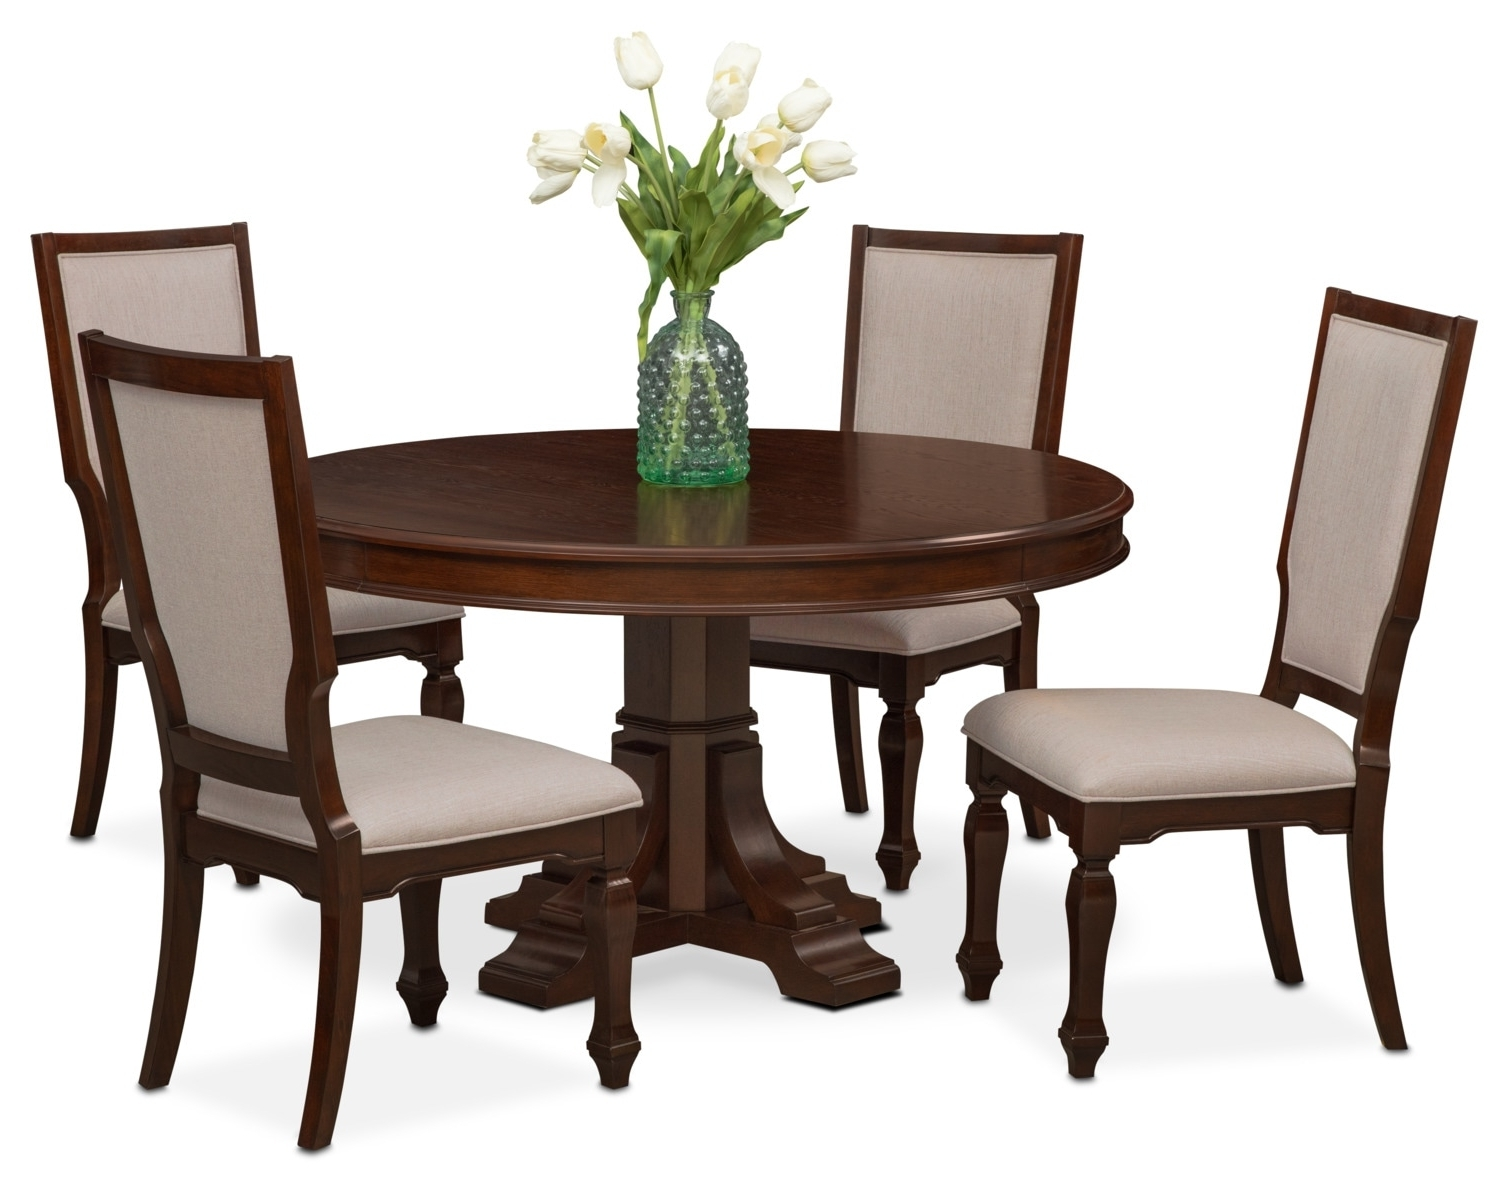 Vienna Round Dining Table And 4 Upholstered Side Chairs – Merlot For Preferred Vienna Dining Tables (Gallery 5 of 25)